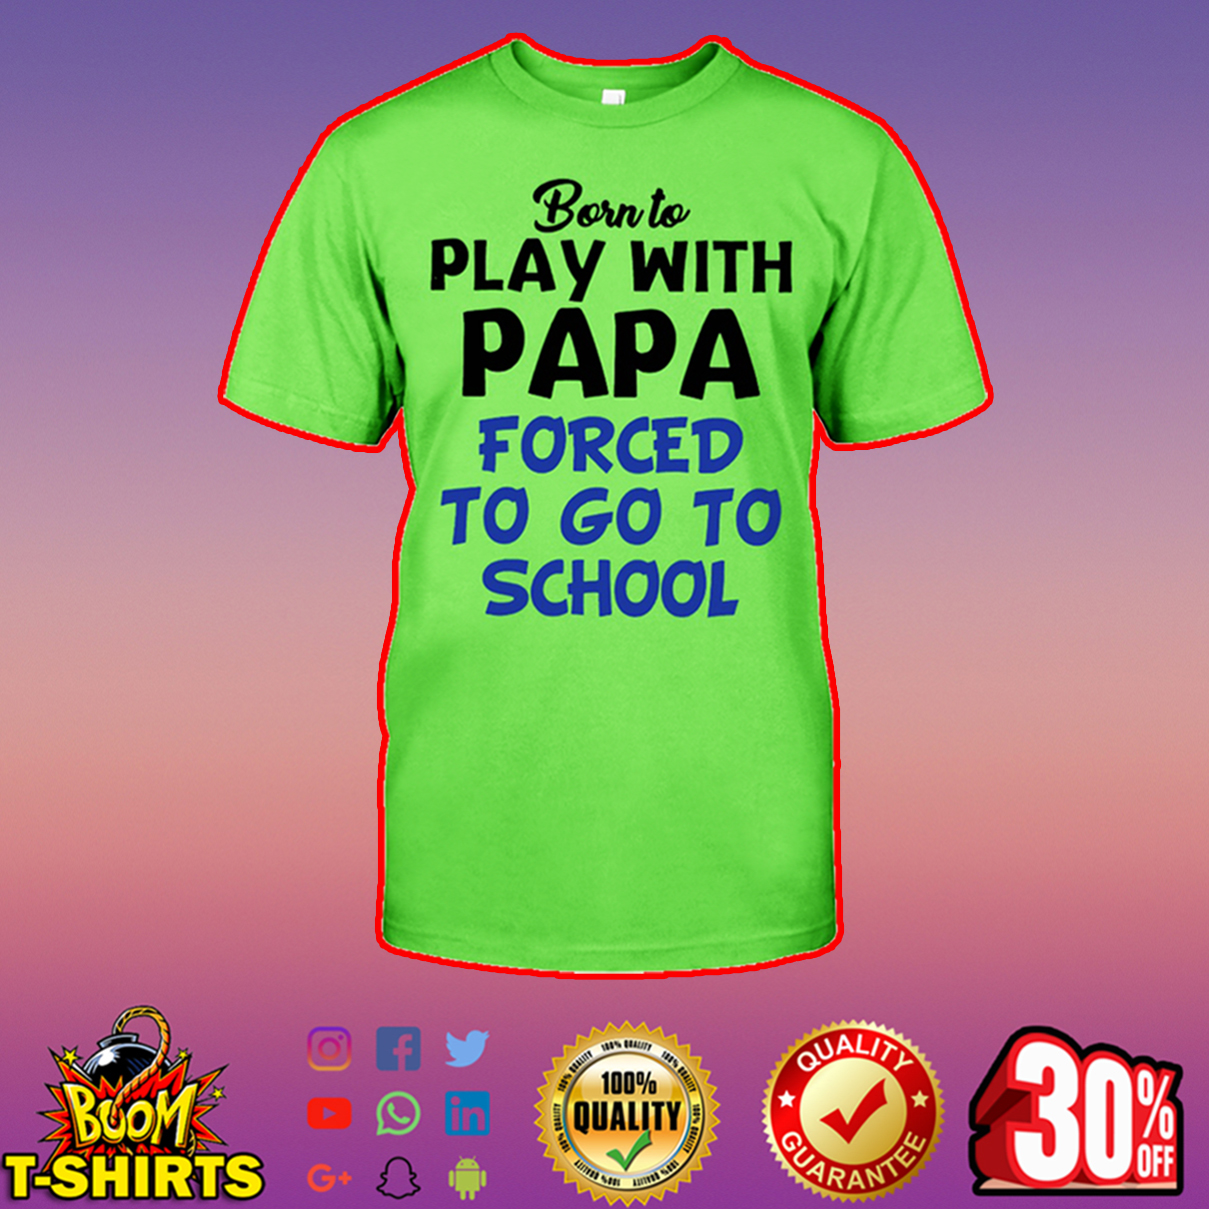 Born to play with papa forced to go to school t-shirt